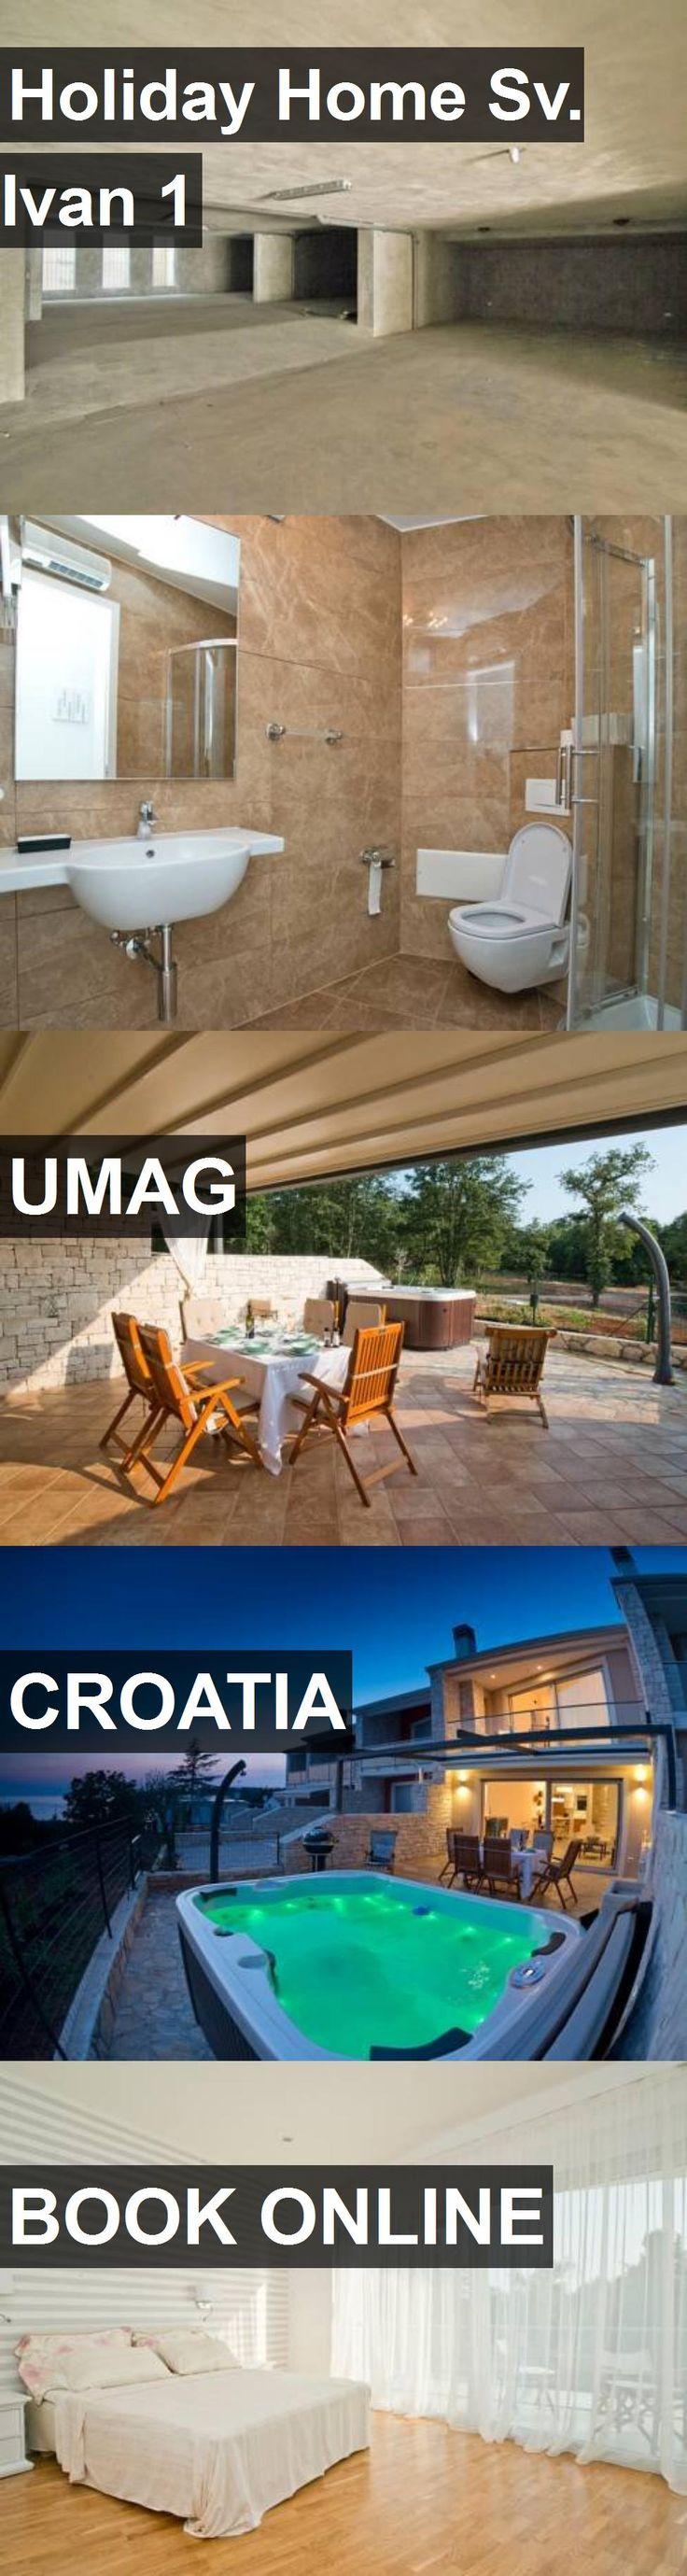 Hotel Holiday Home Sv. Ivan 1 in Umag, Croatia. For more information, photos, reviews and best prices please follow the link. #Croatia #Umag #travel #vacation #hotel